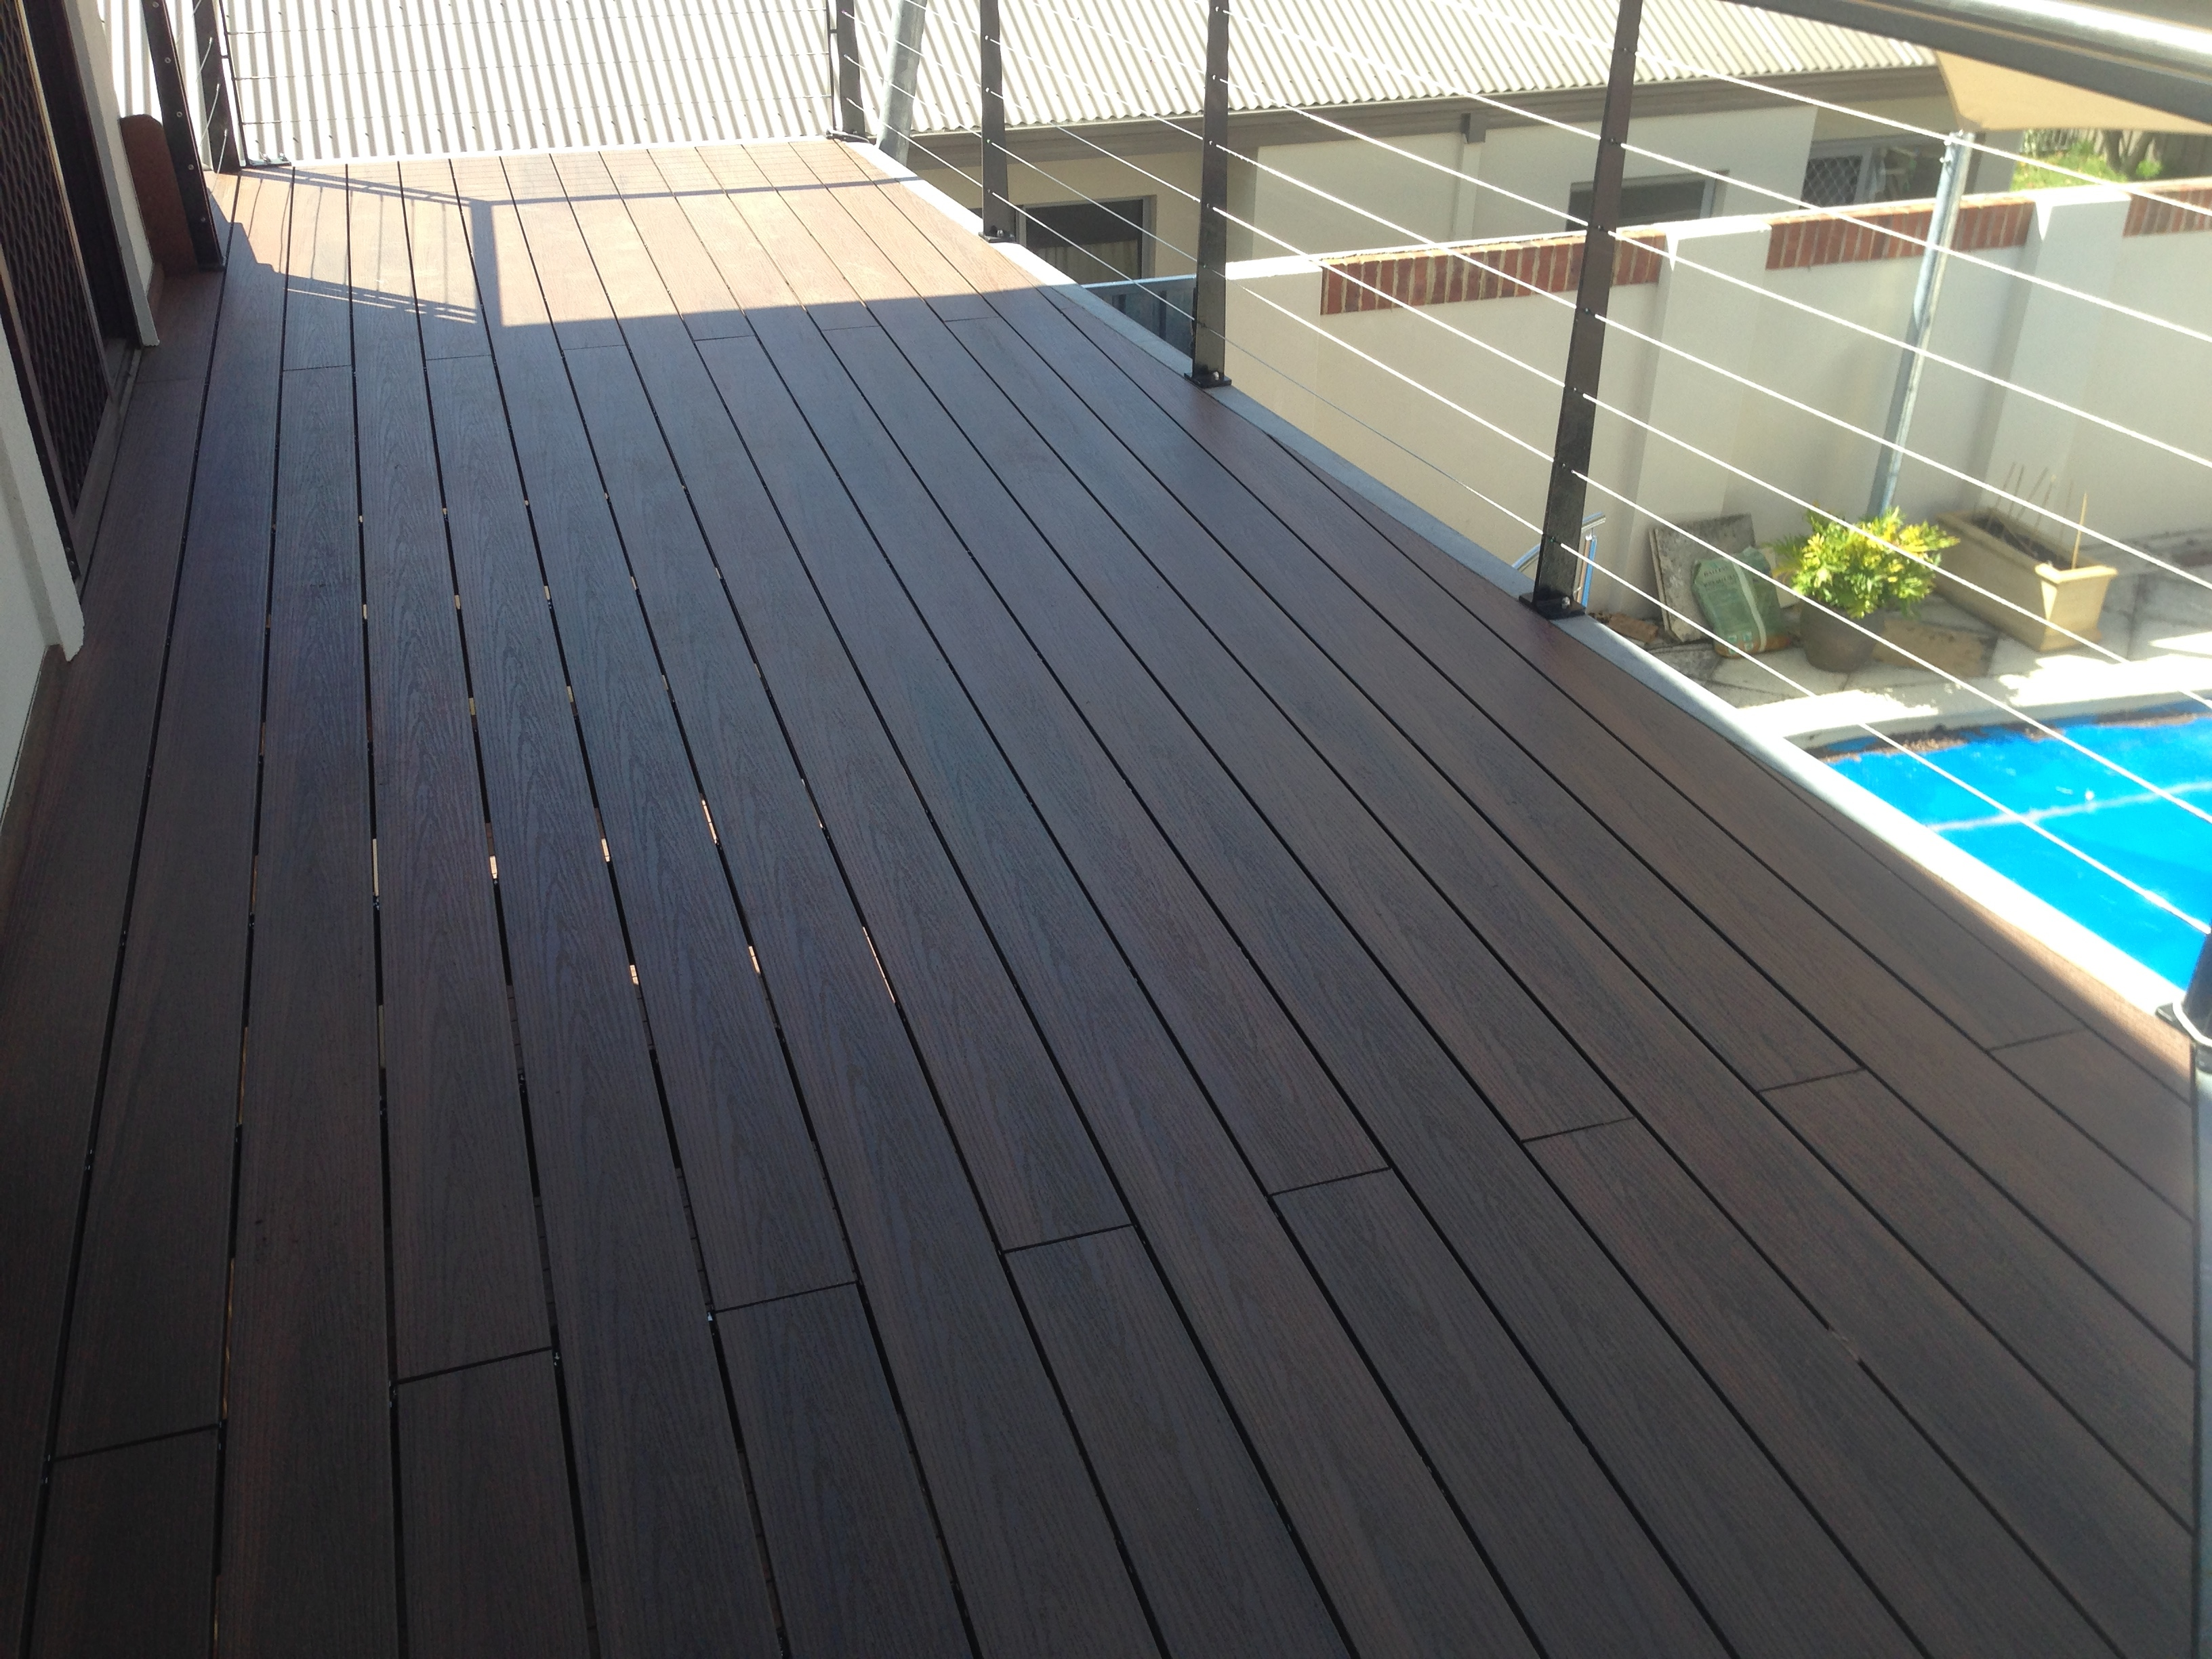 Suntec composite decking composite decking perth for Compare composite decking brands